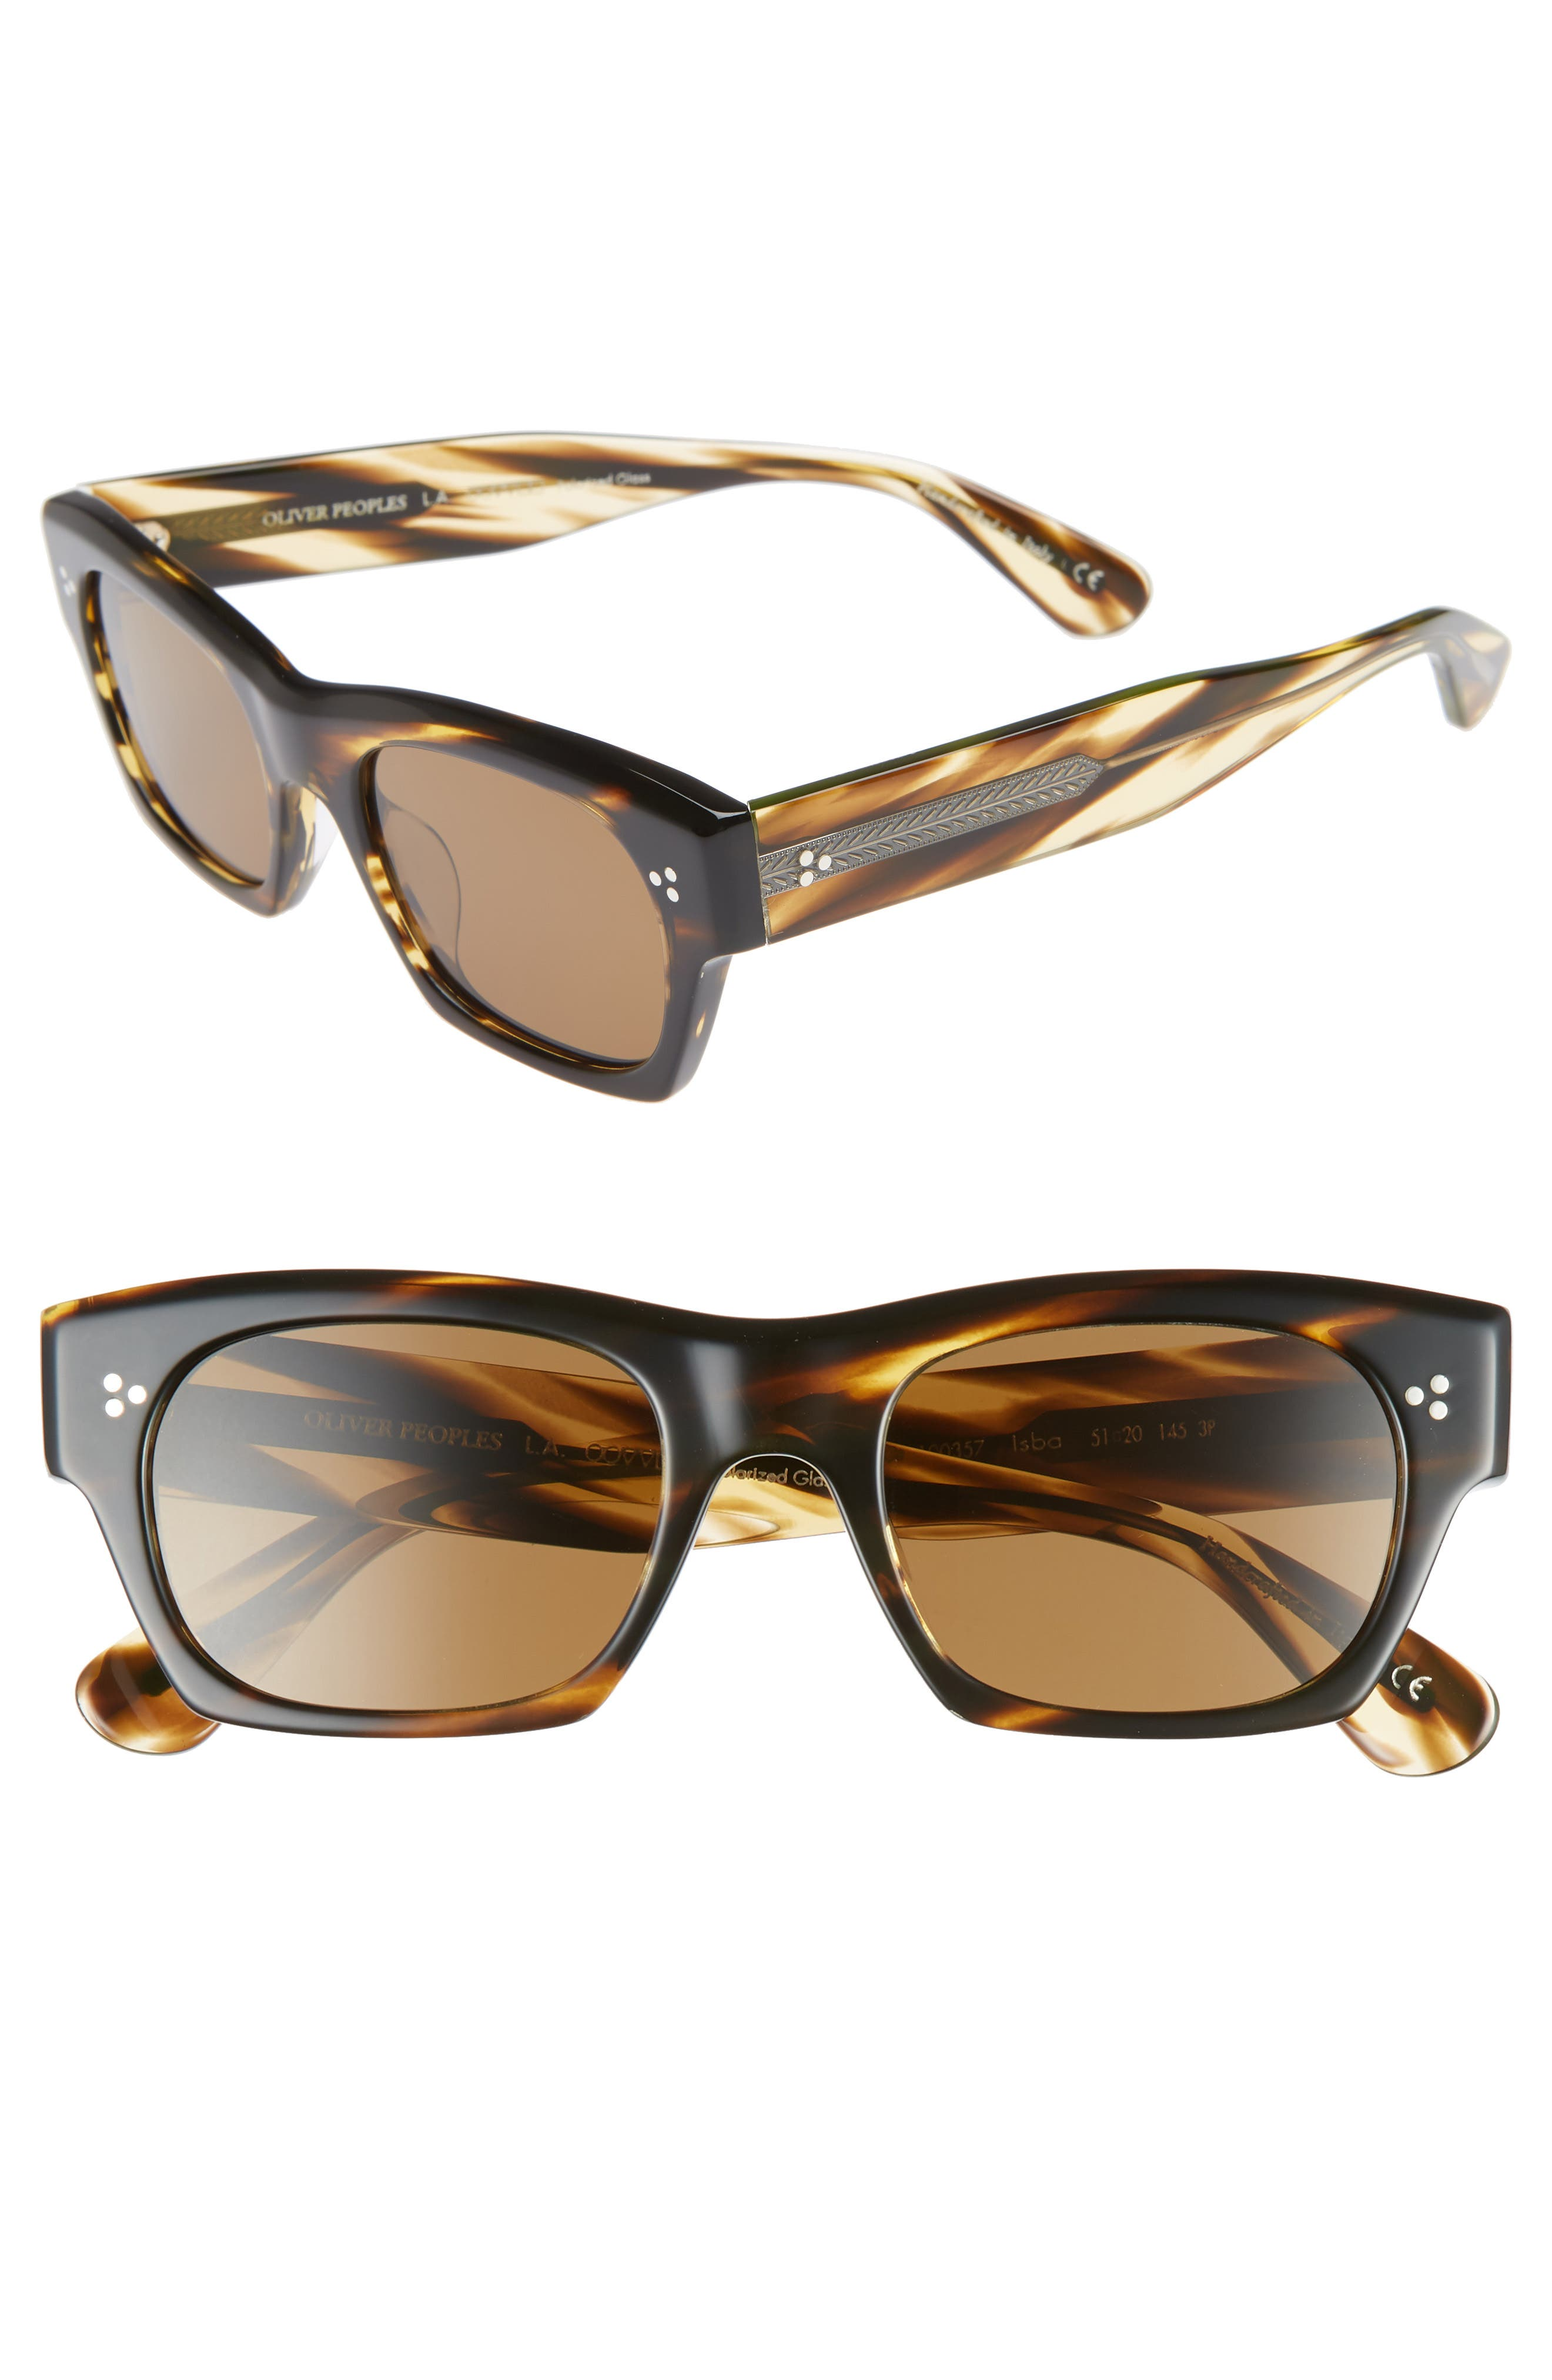 OLIVER PEOPLES Women'S Isba Polarized Rectangular Sunglasses, 51Mm in Cocobolo